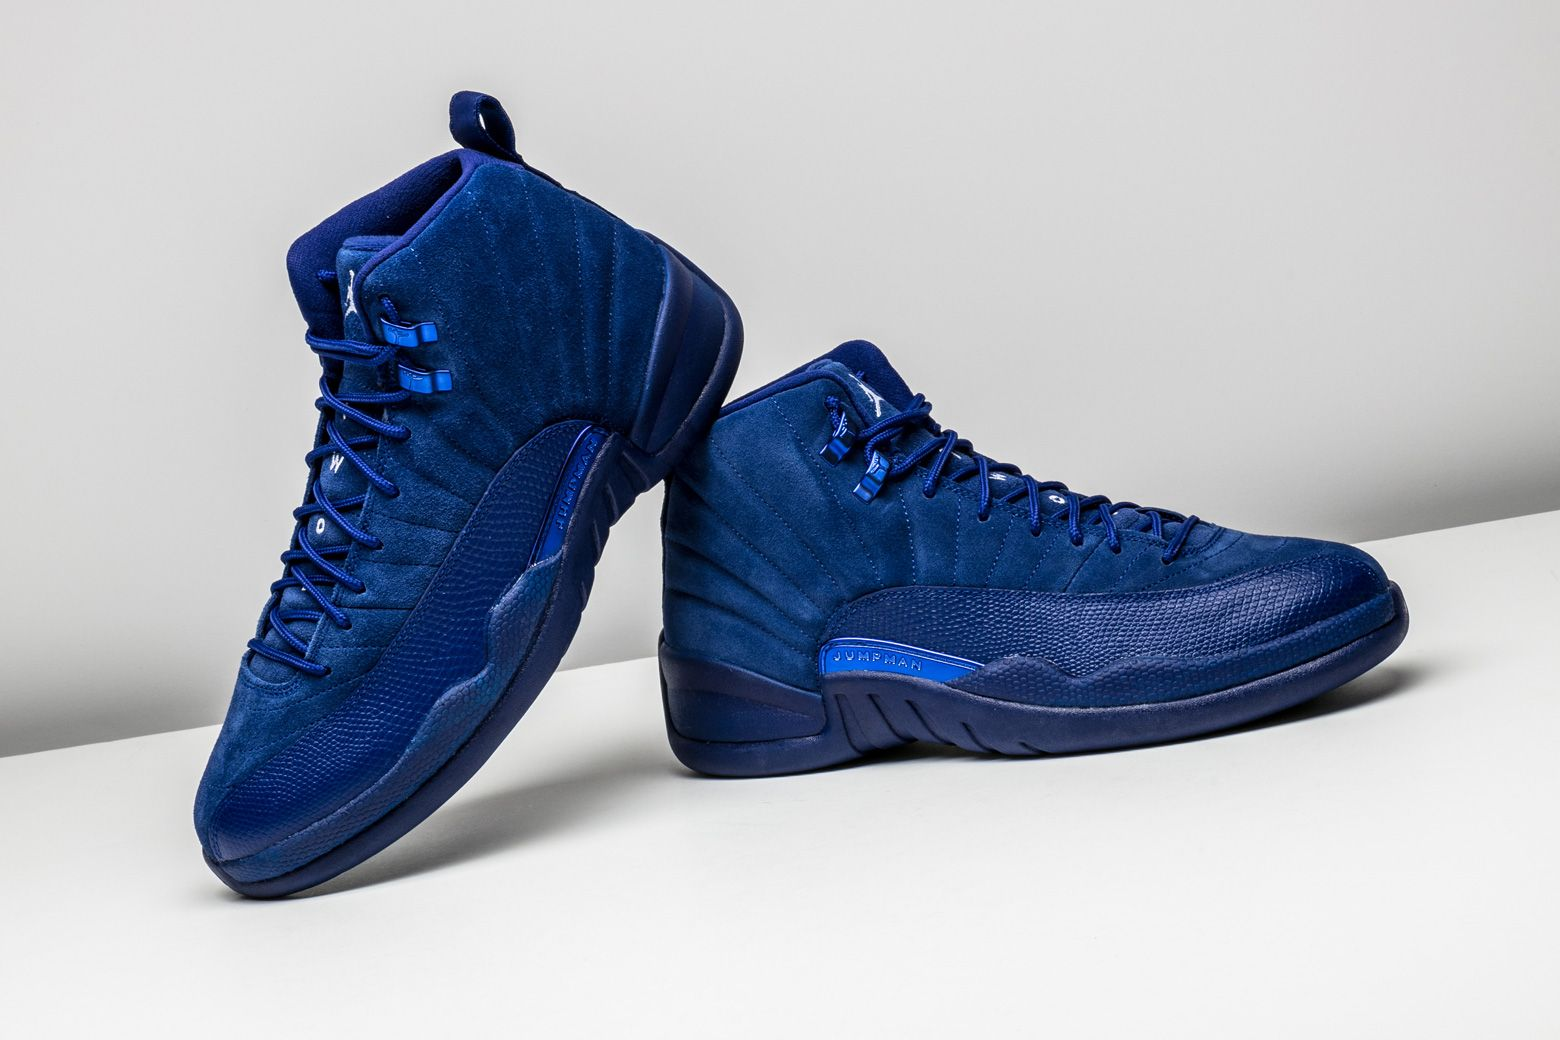 super popular 65d1b fea3f Royal Blue · Tonal sneakers remained on trend in 2016, bringing dope  releases like the Air Jordan 12